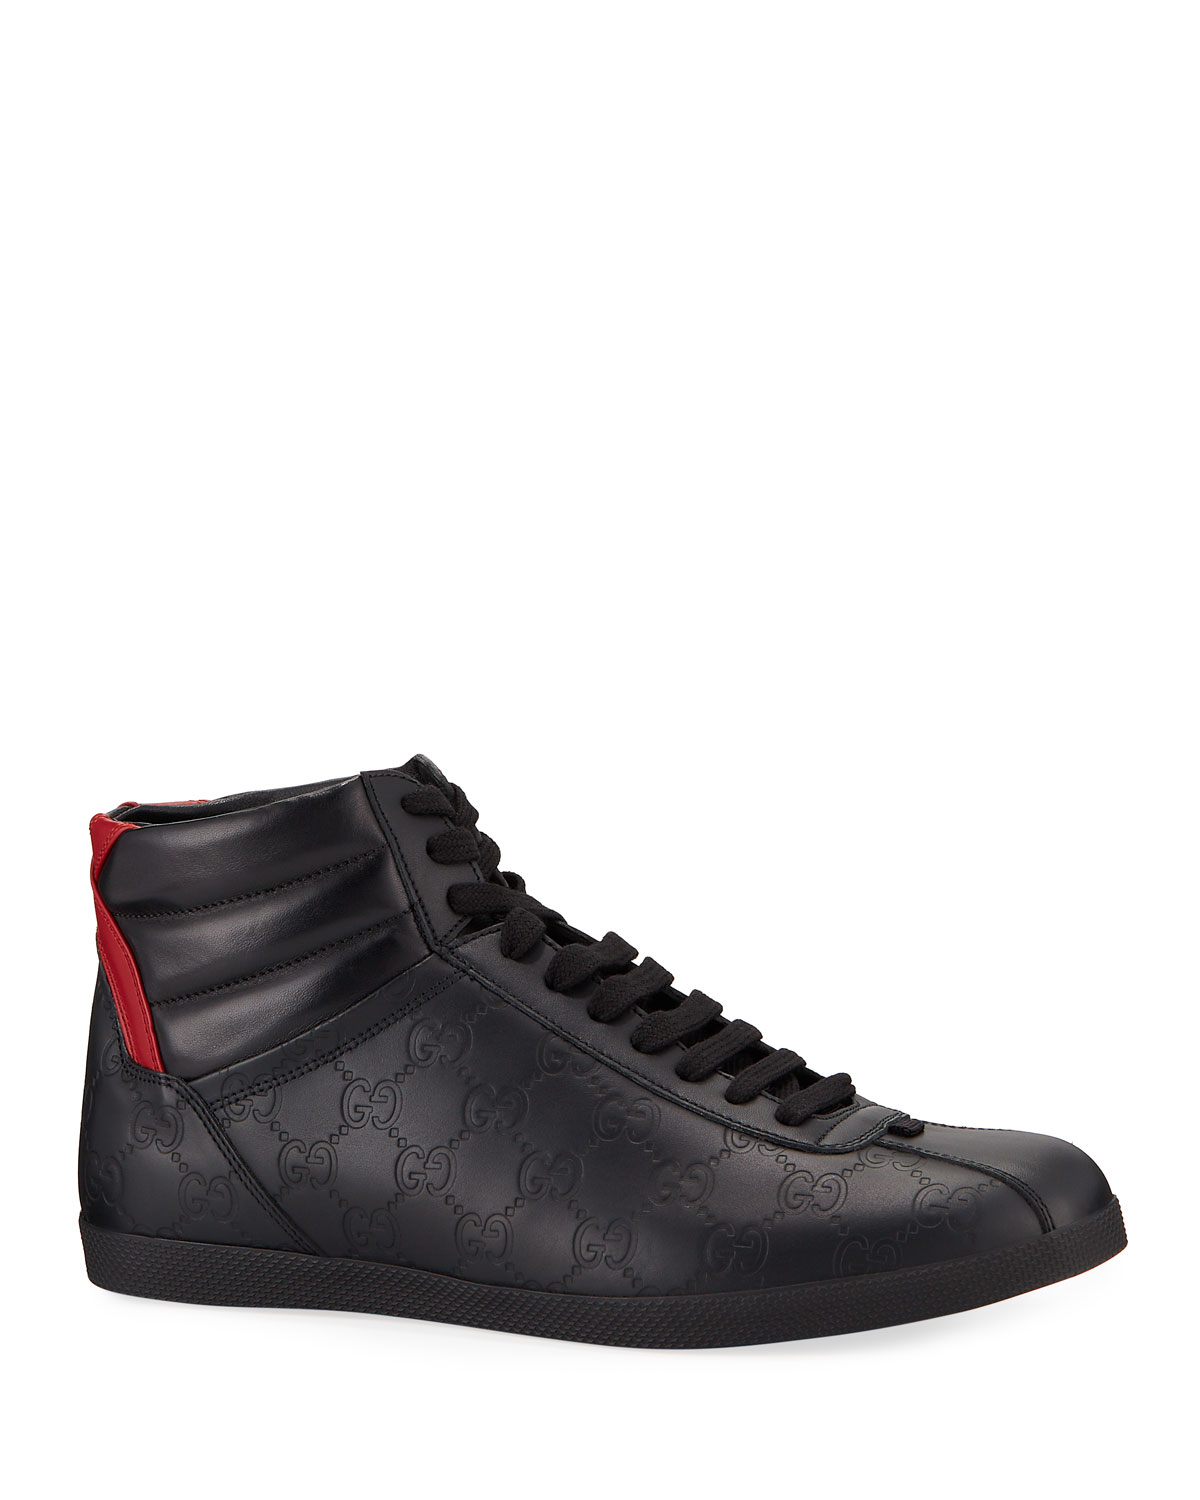 6848b1a09de Gucci Men s Bambi GG-Embossed Leather High-Top Sneakers